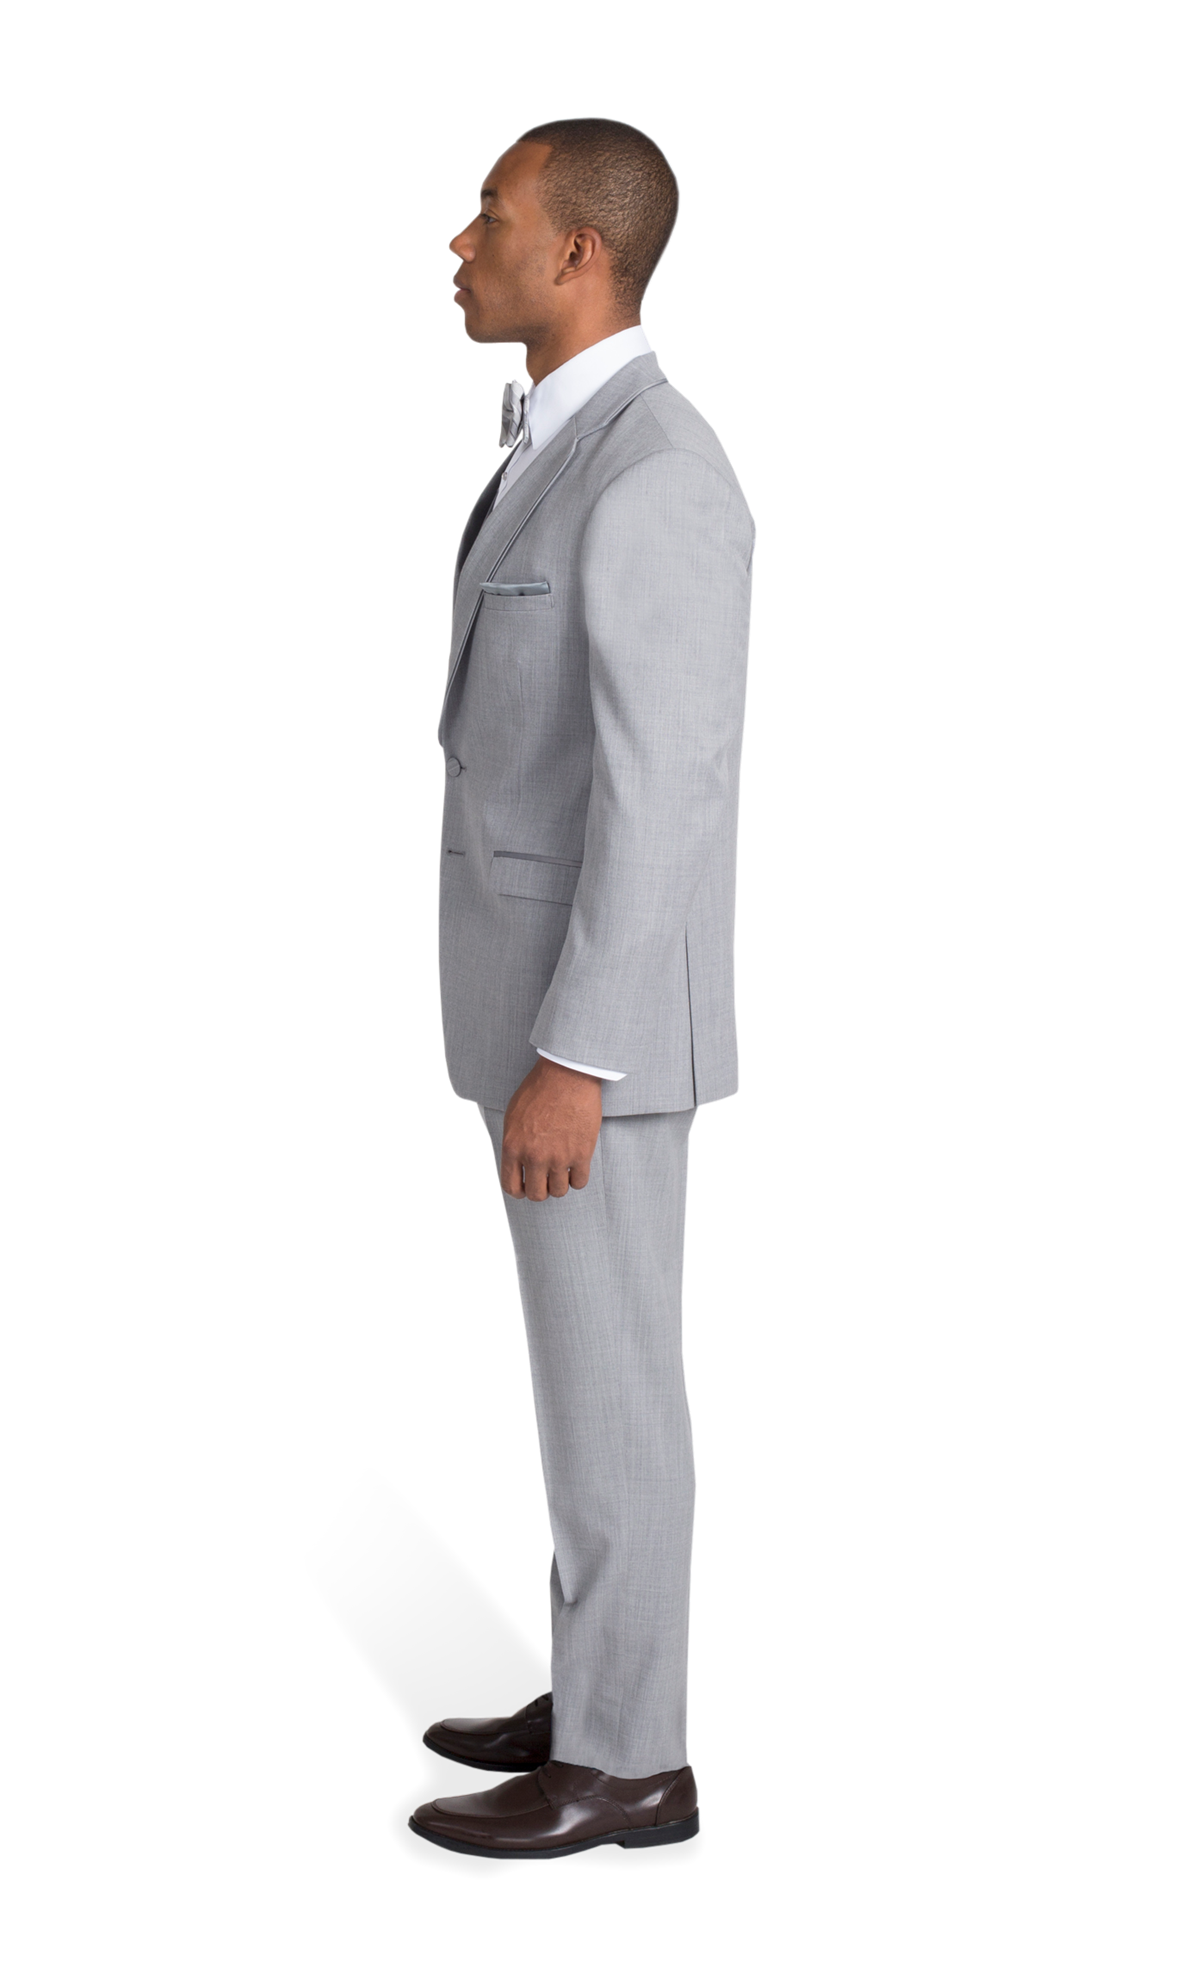 Heather Grey Notch Lapel Suit - Right Side View